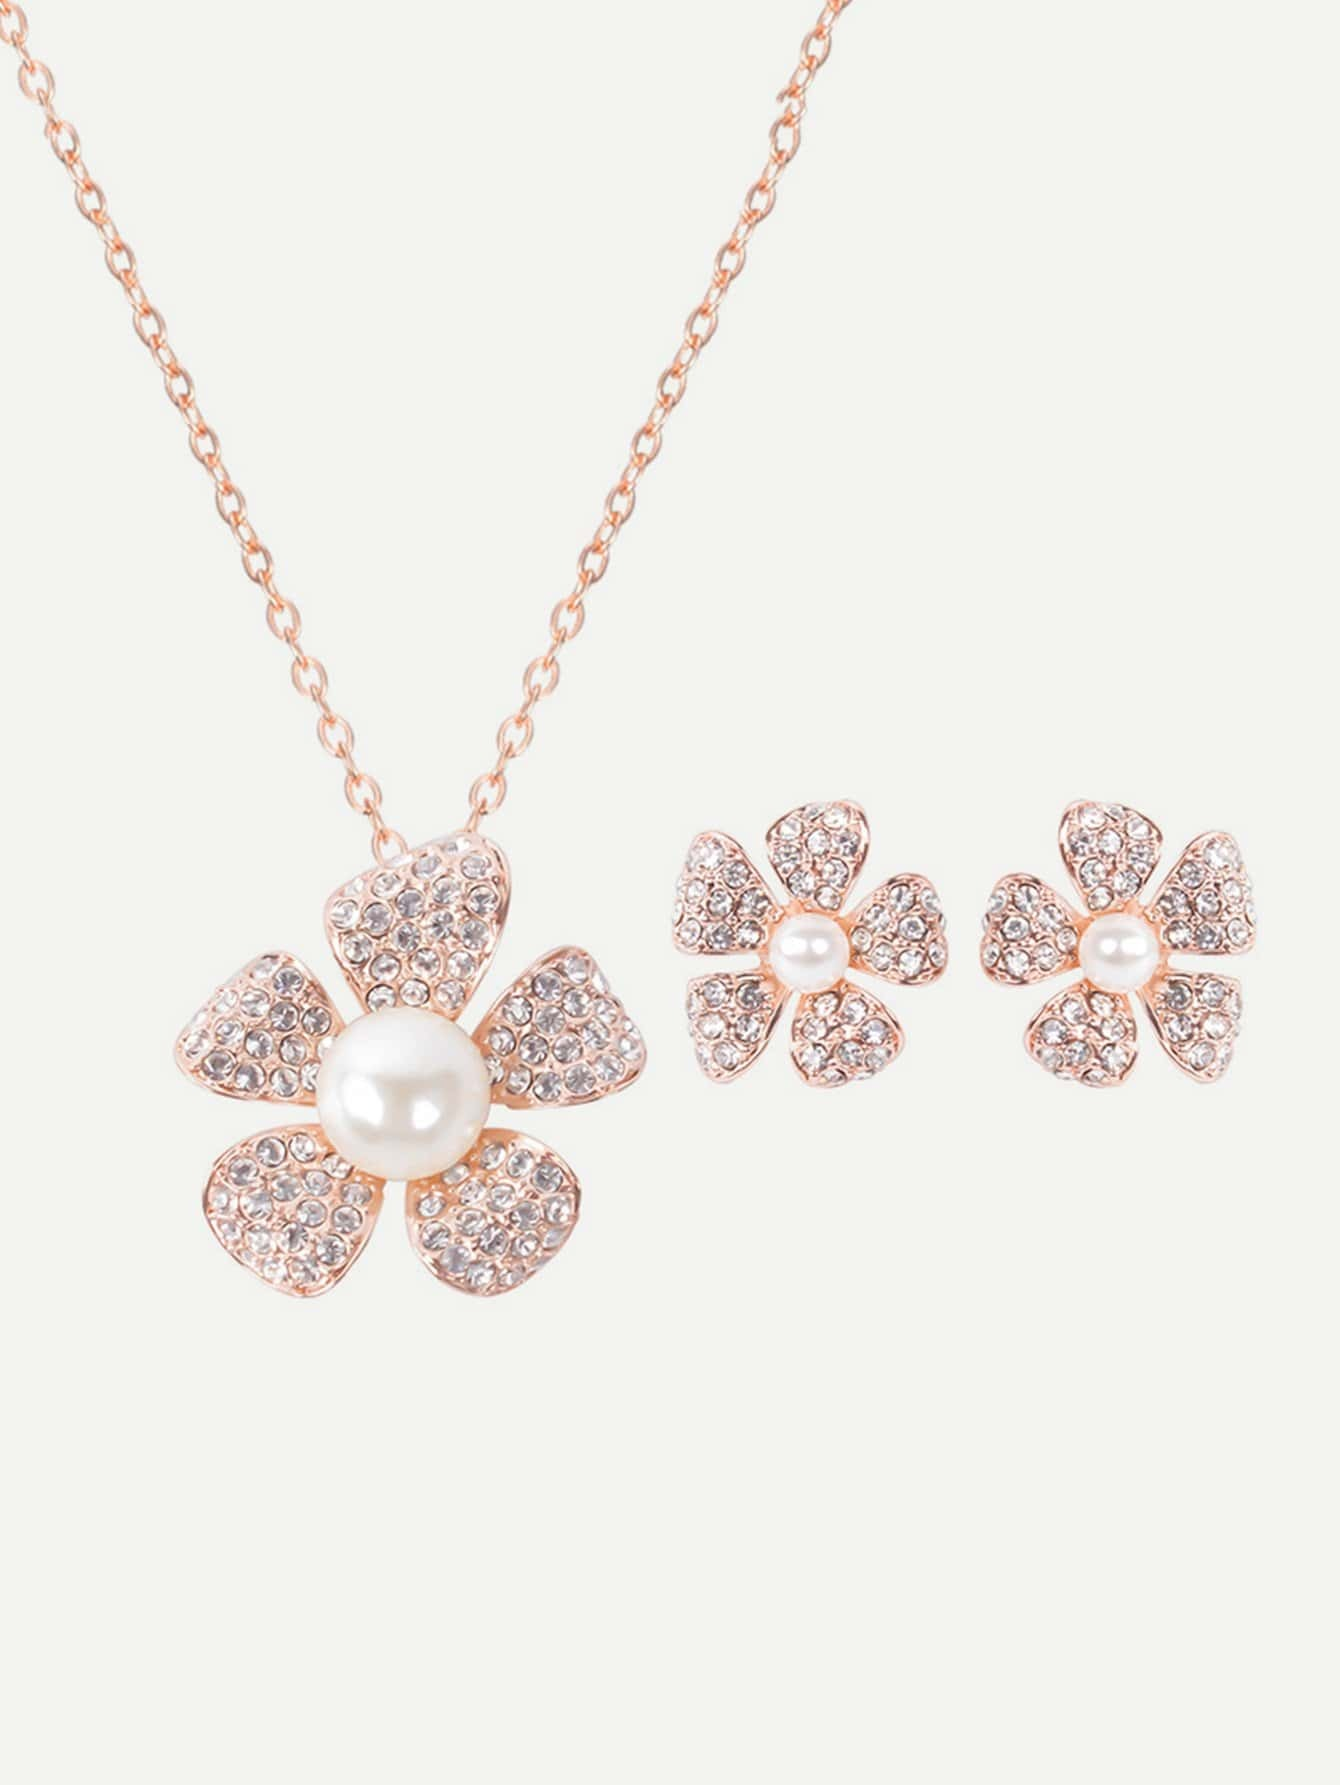 Rhinestone Flower Pendant Necklace And Stud Earrings rhinestone flower design pendant necklace